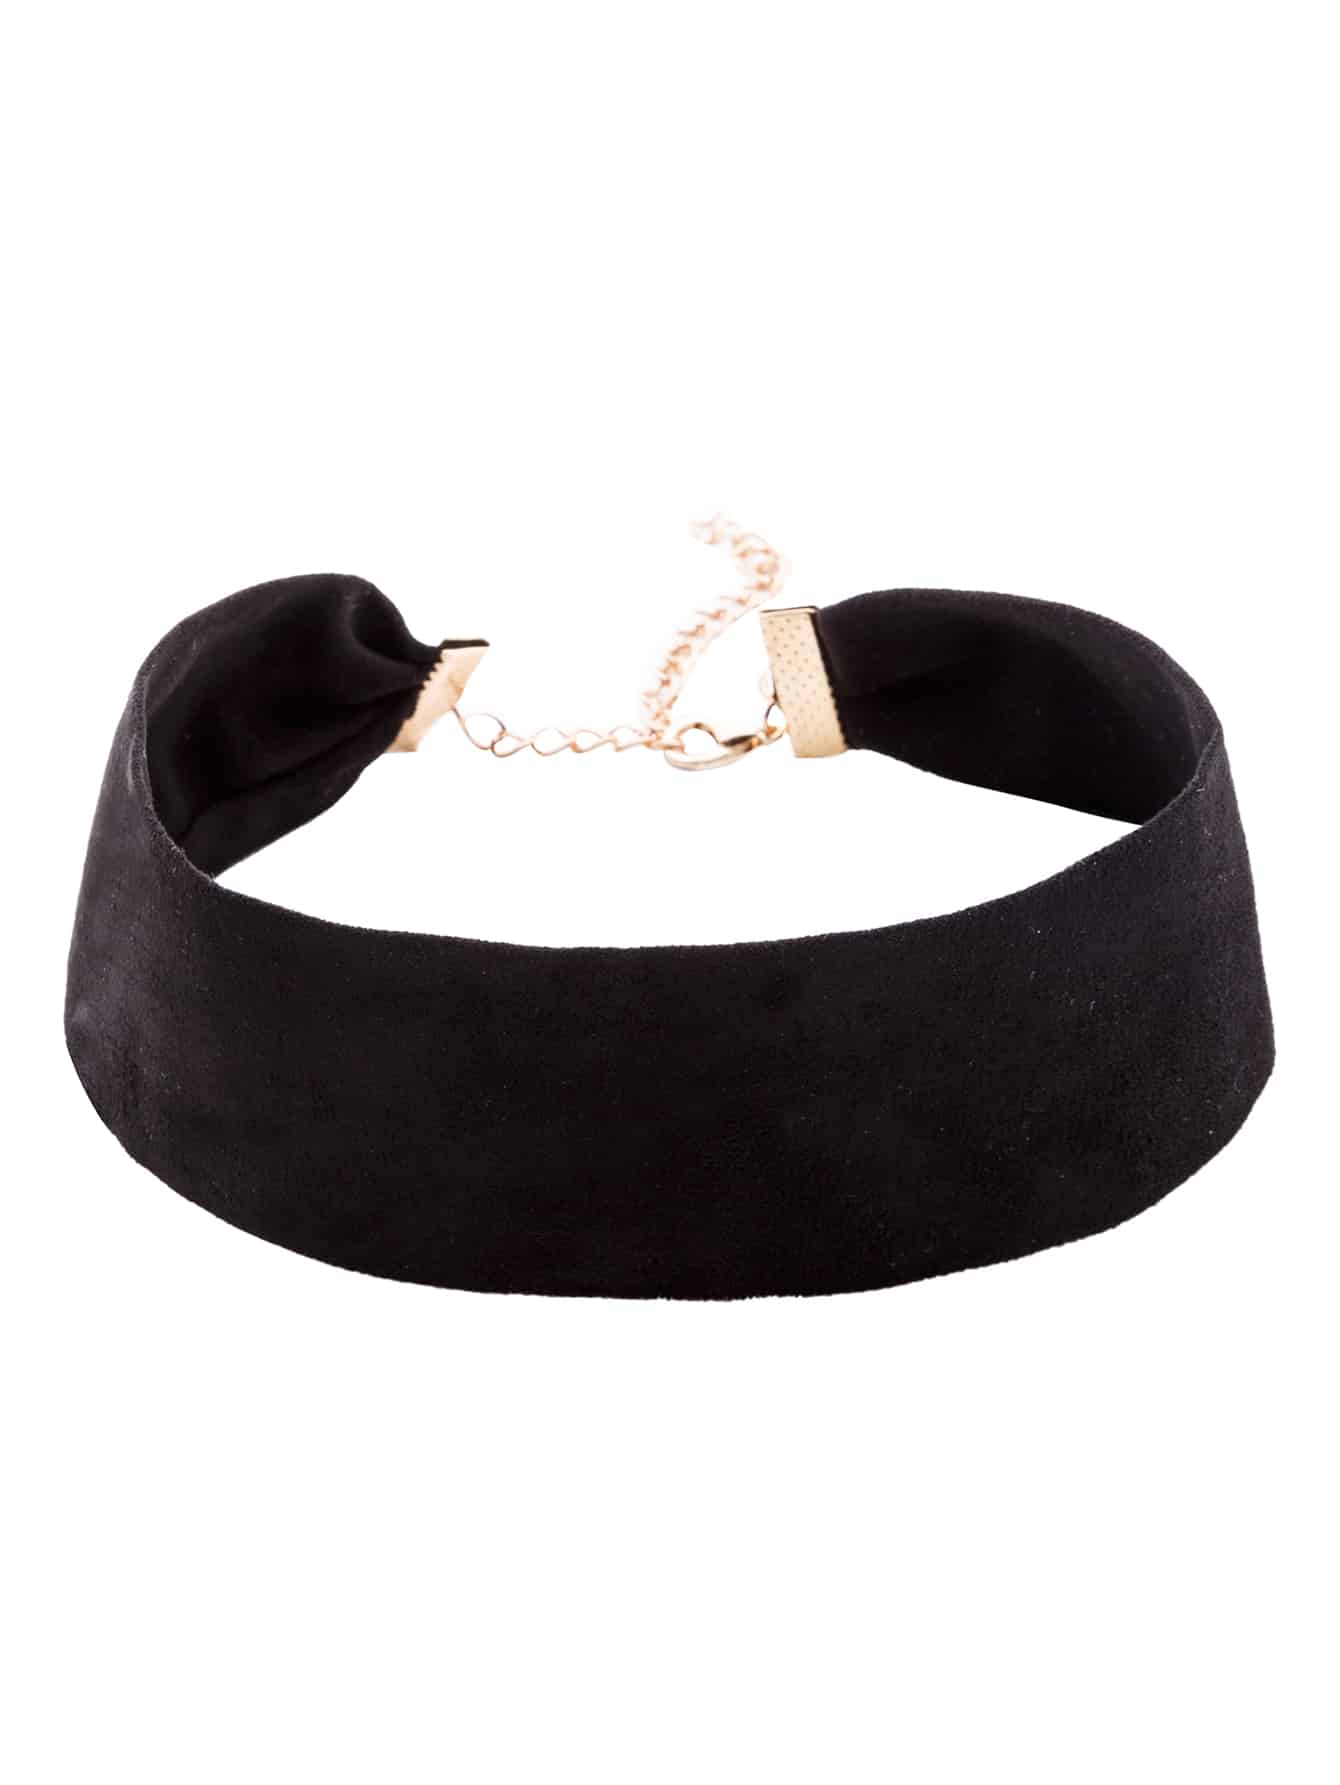 Black Suede Simple Wide Choker Necklace simple black cloth choker necklace for women